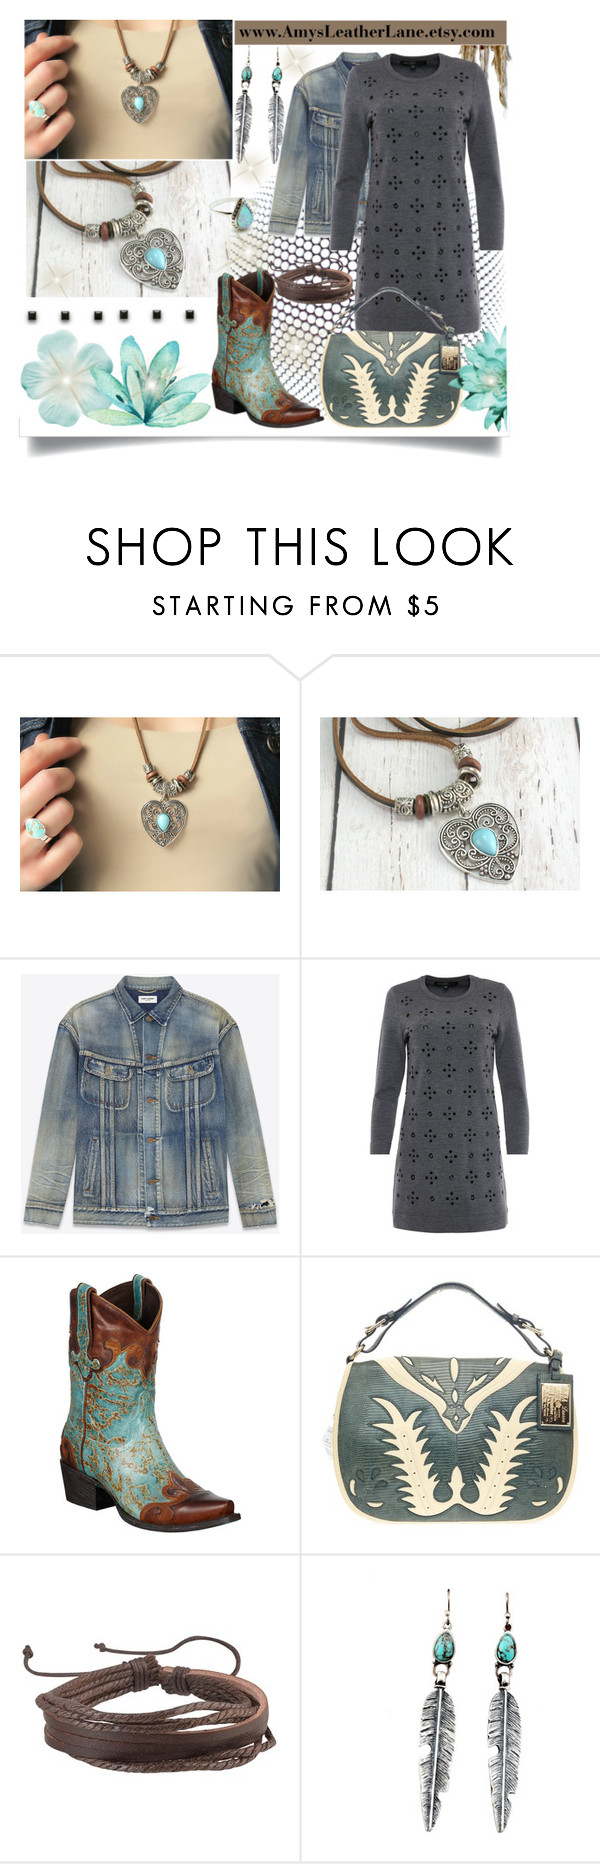 """""""Amy's Leather Lane Necklace"""" by jeneric2015 ❤ liked on Polyvore featuring Marc by Marc Jacobs, Ralph Lauren, Zodaca, Child Of Wild, women's clothing, women, female, woman, misses and juniors"""